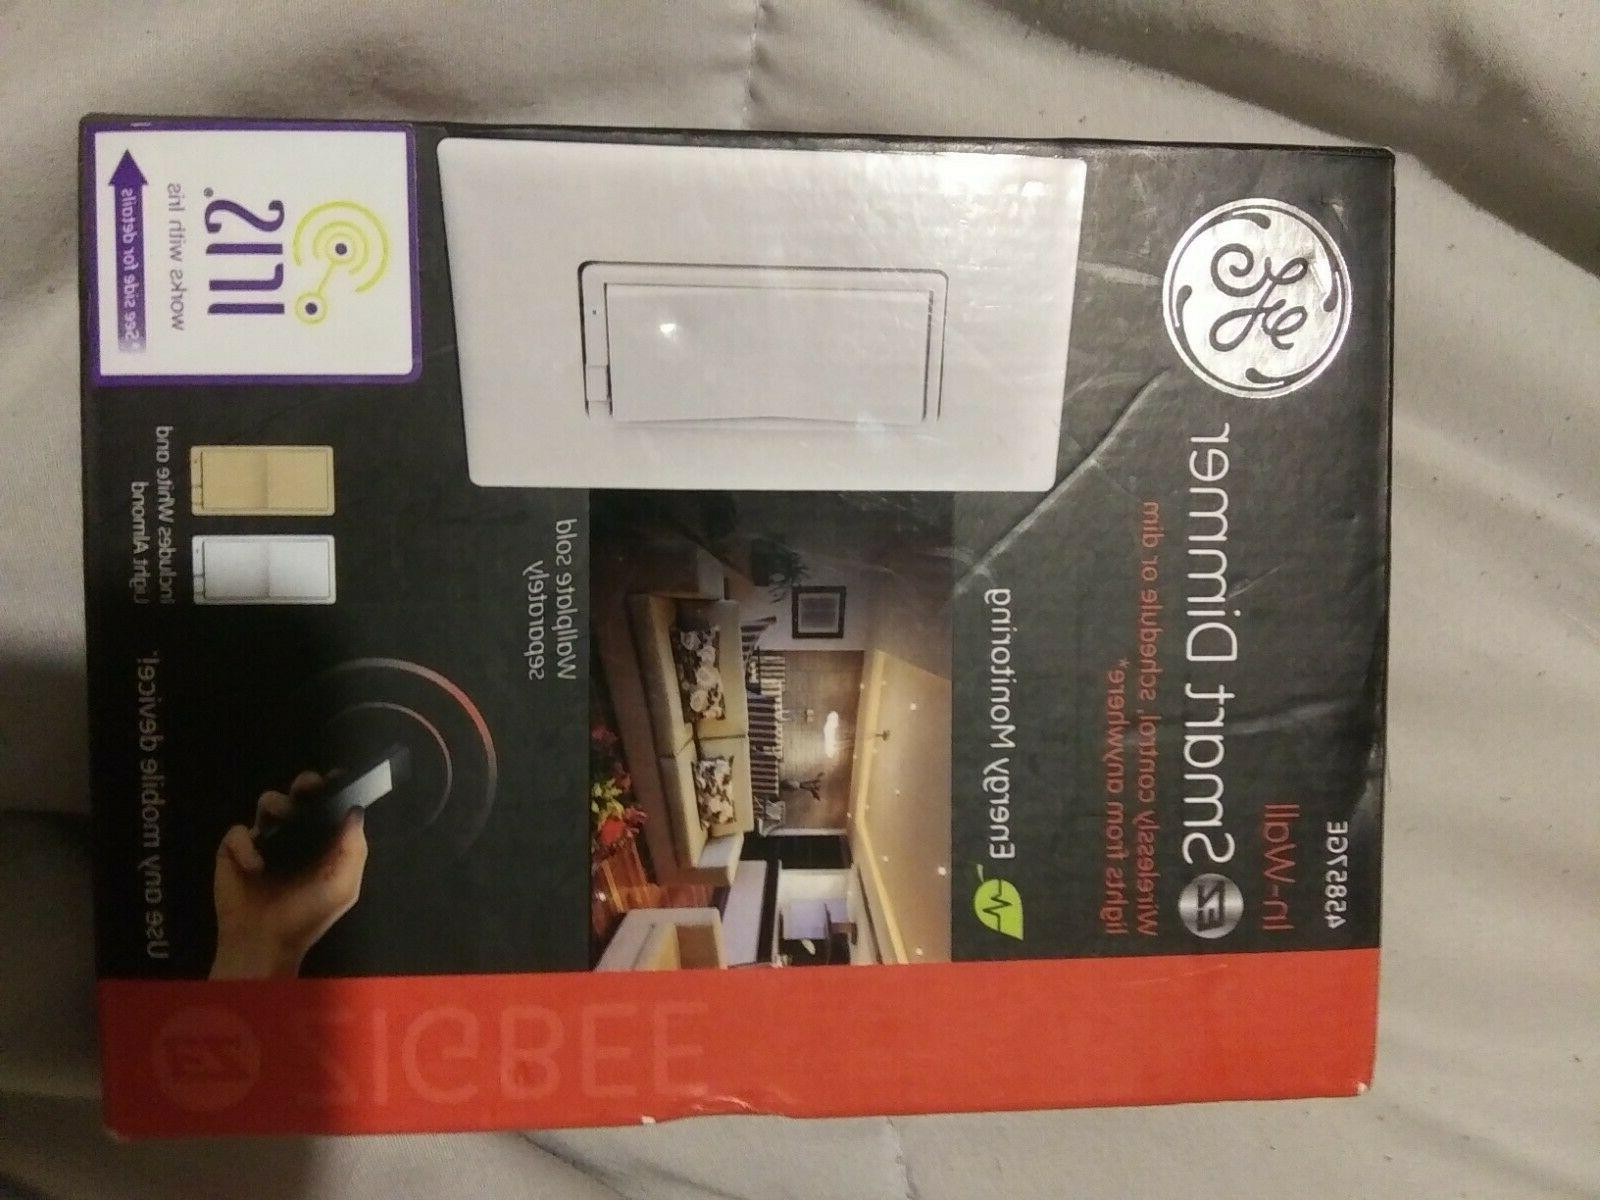 in wall ez smart dimmer energy monitoring